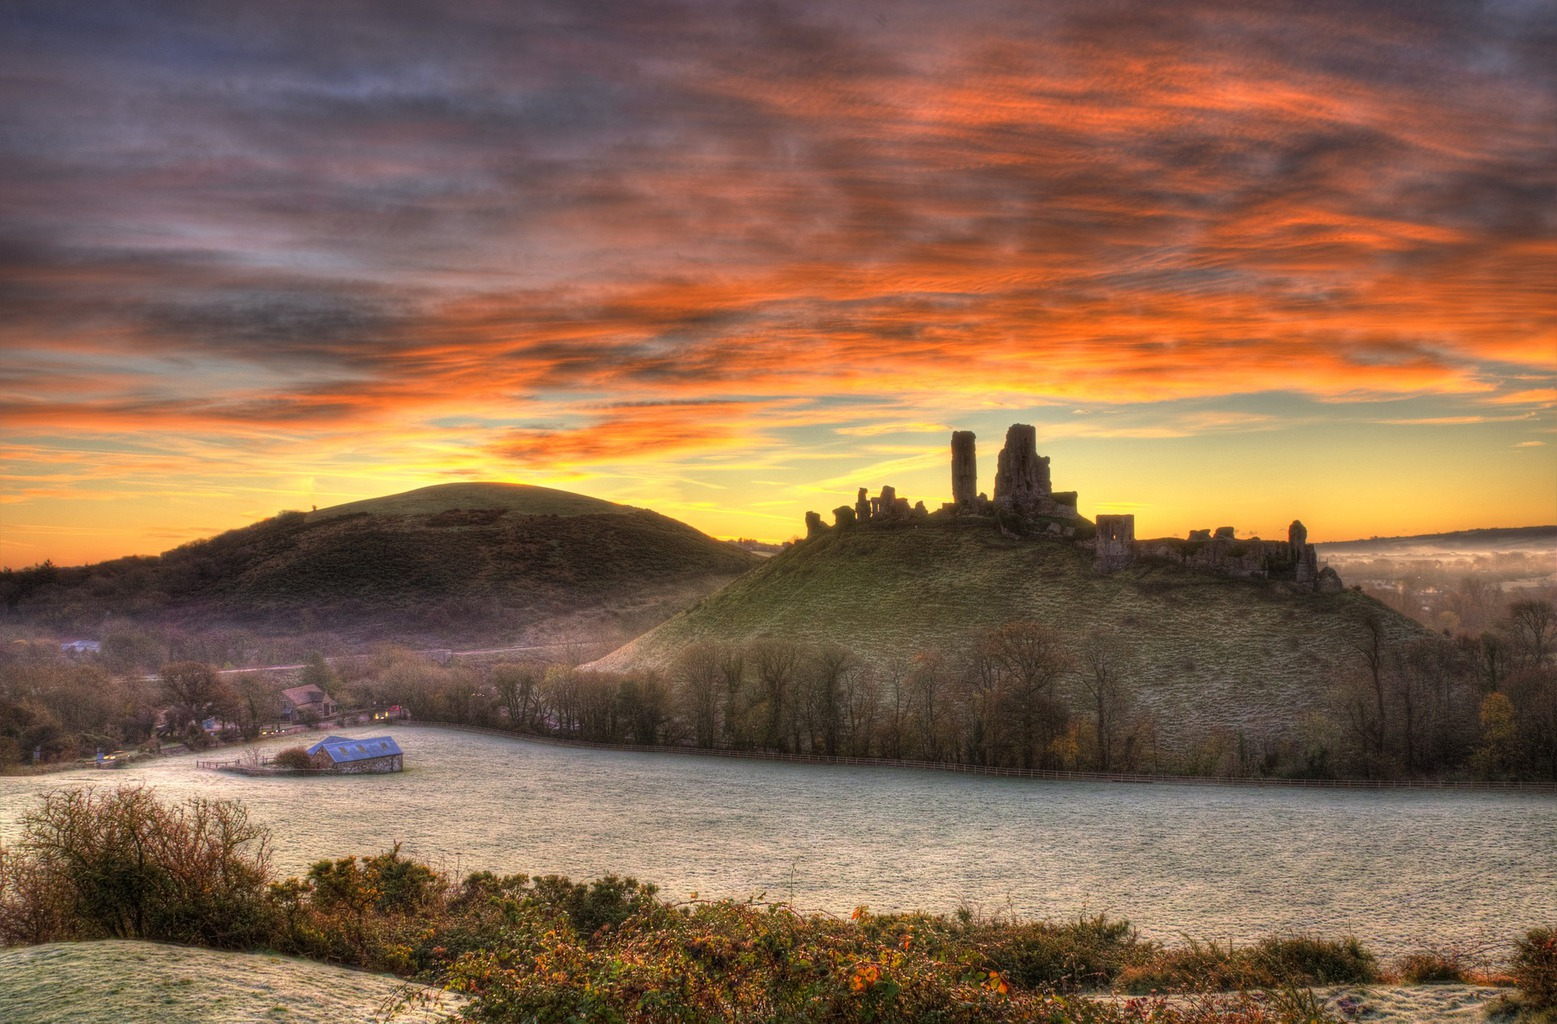 Castles in Dorset - ruins of Corfe Castle againt a sunrise